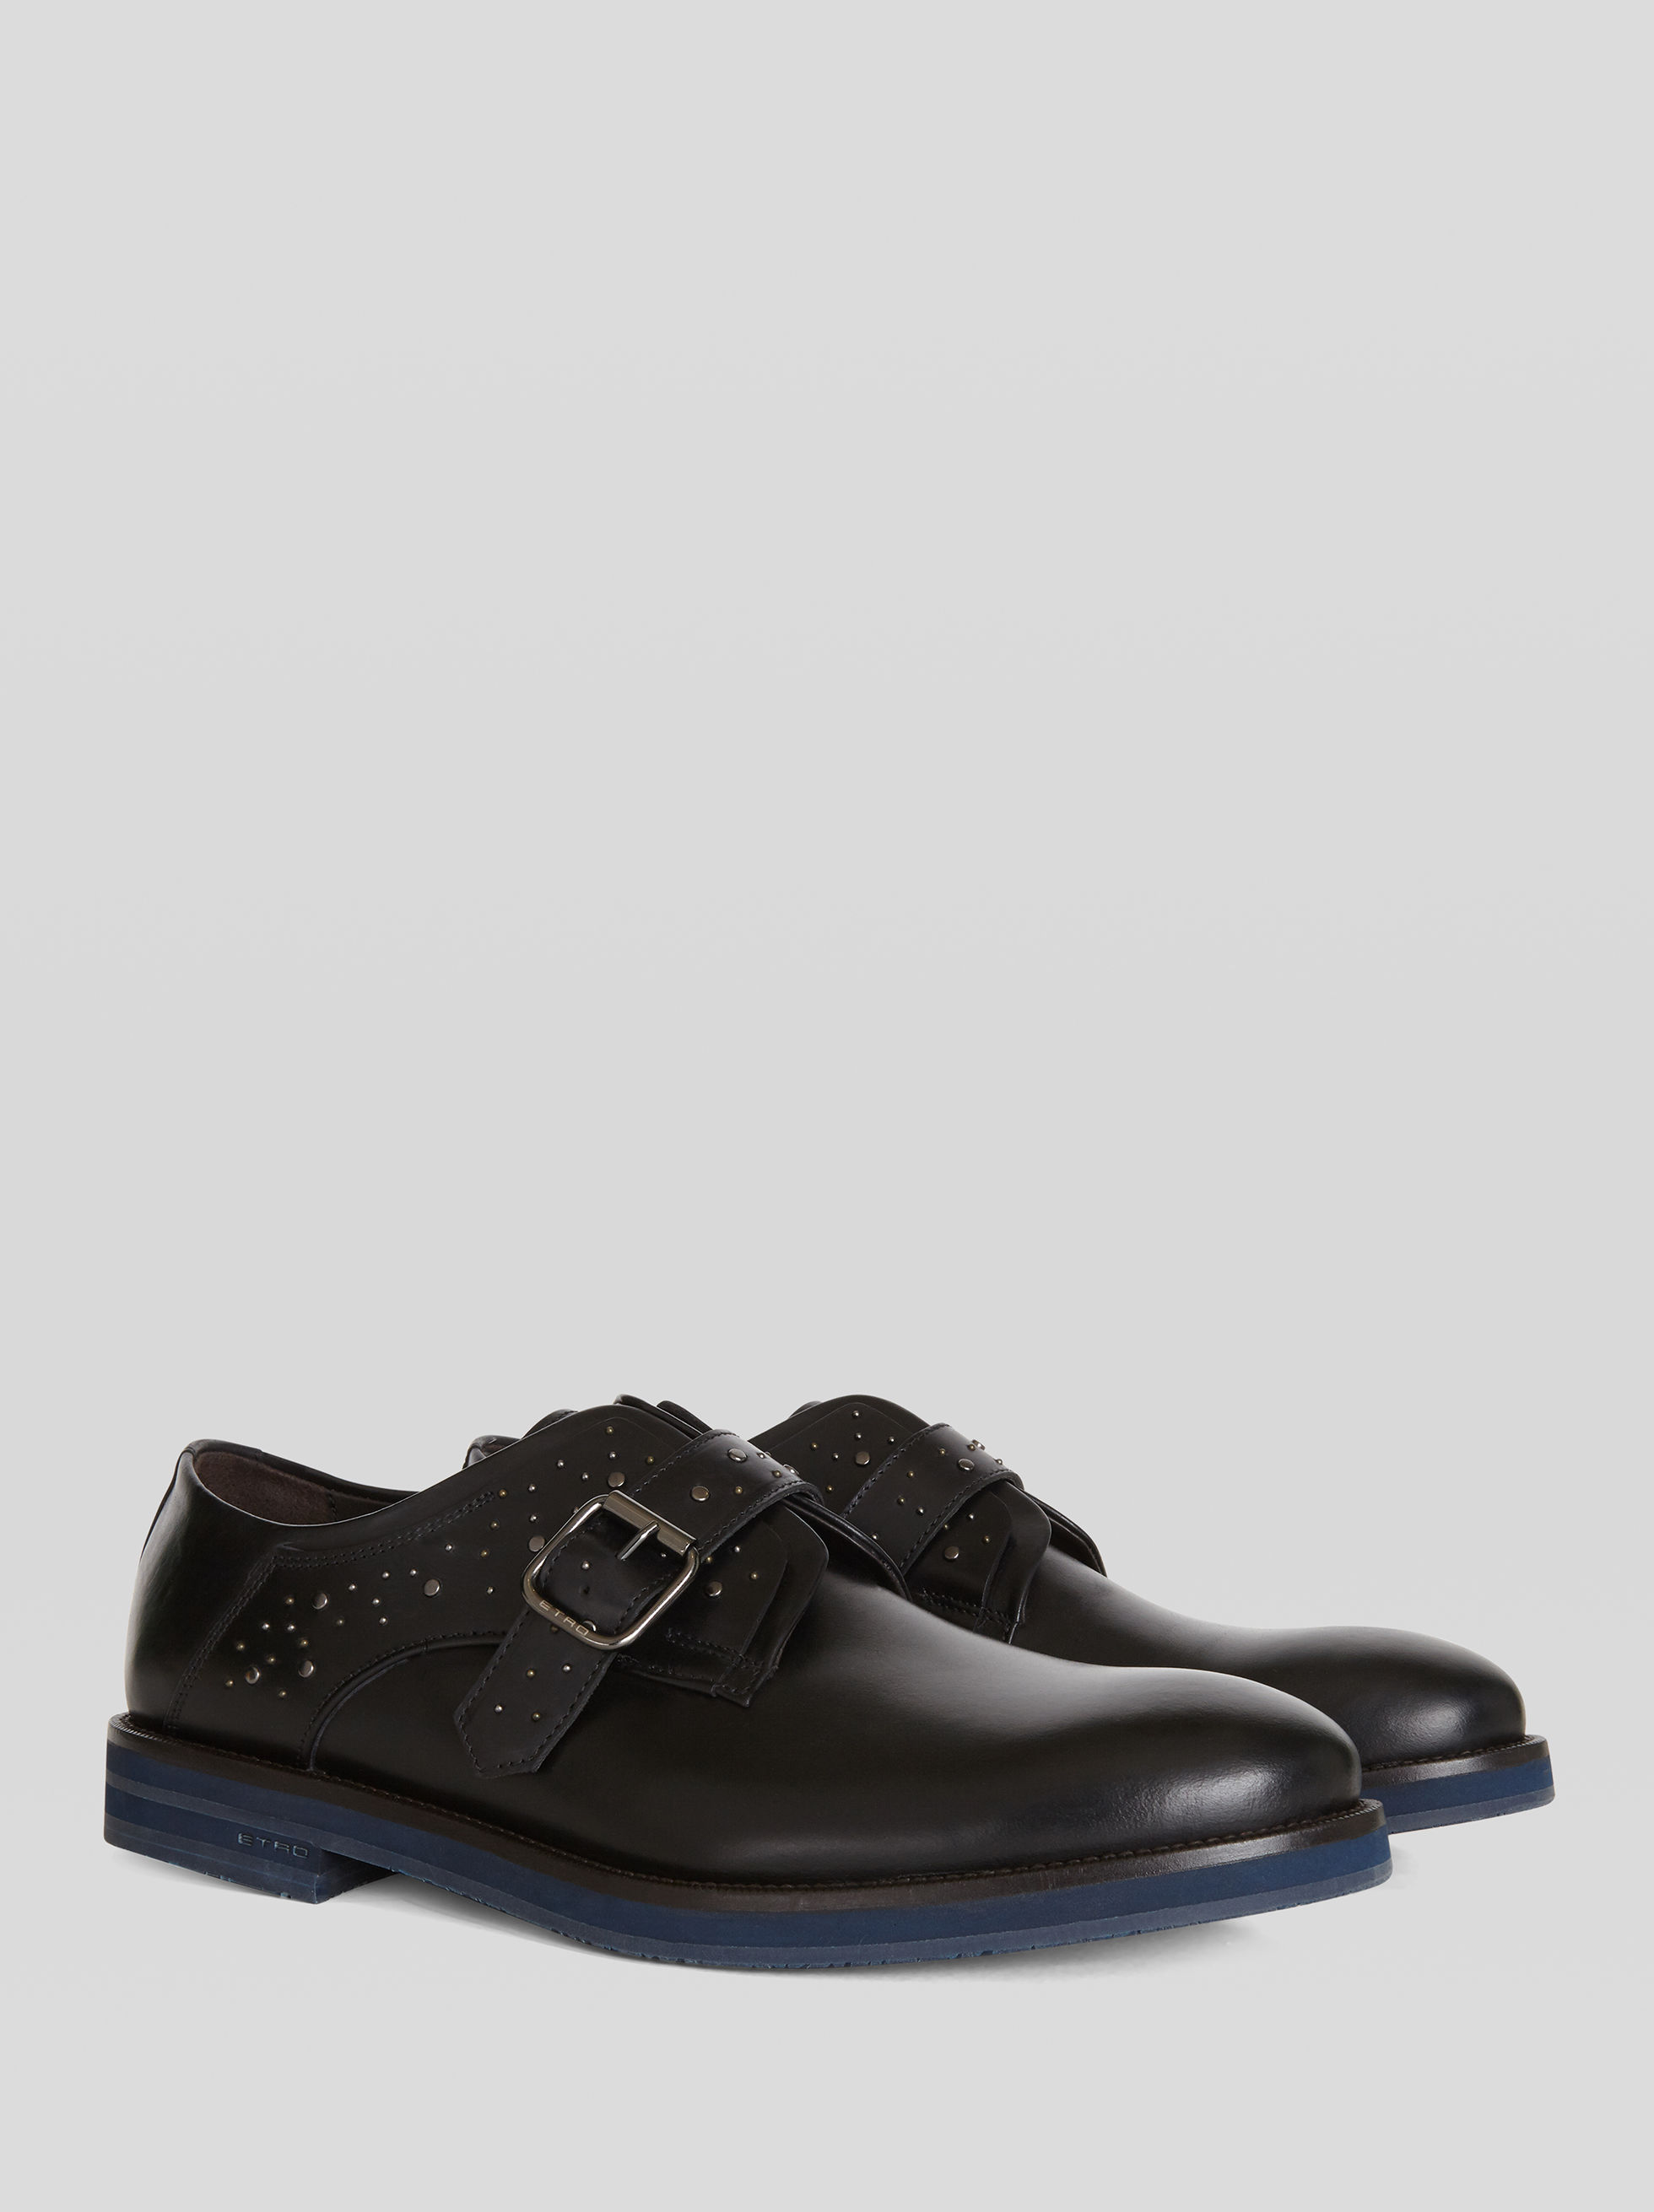 LEATHER MONK STRAPS WITH STUDS